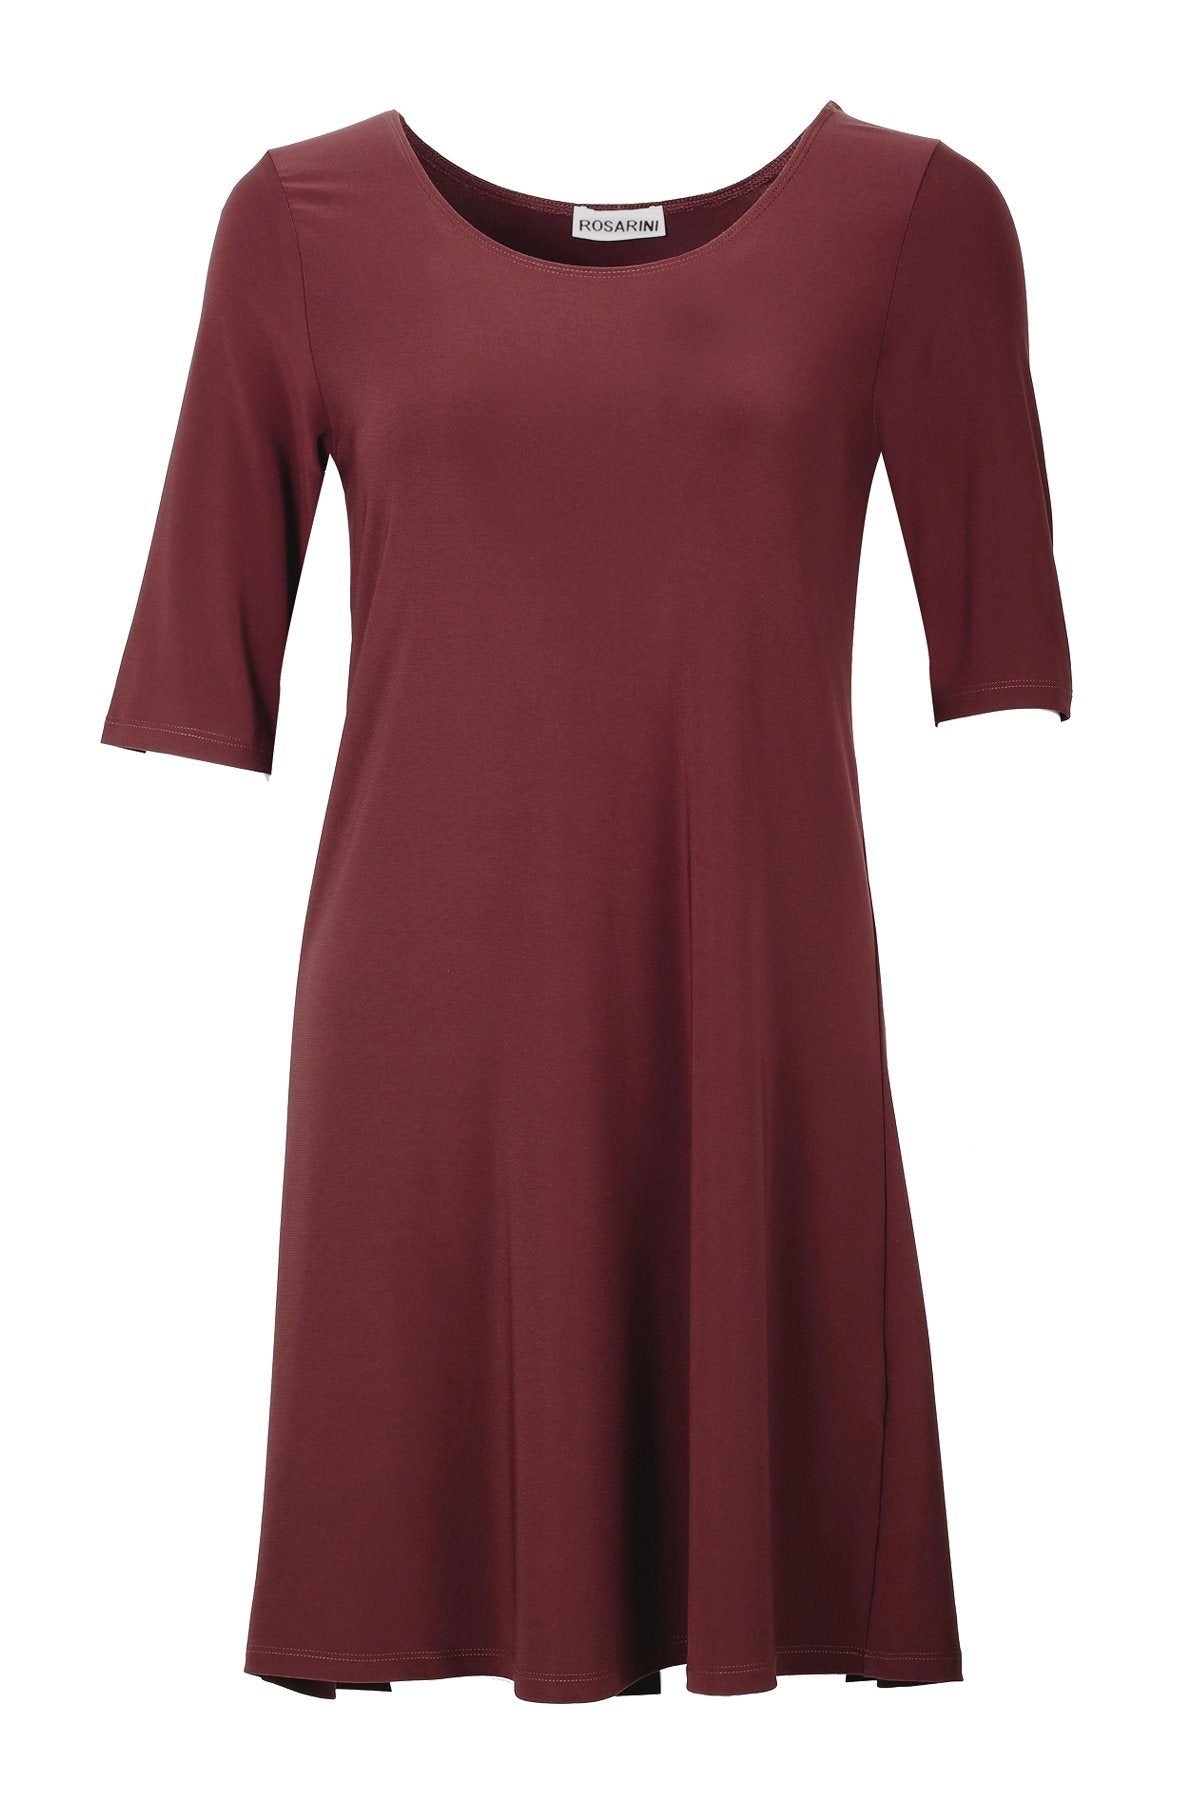 Women's Chestnut A Line Dress Top Rosarini